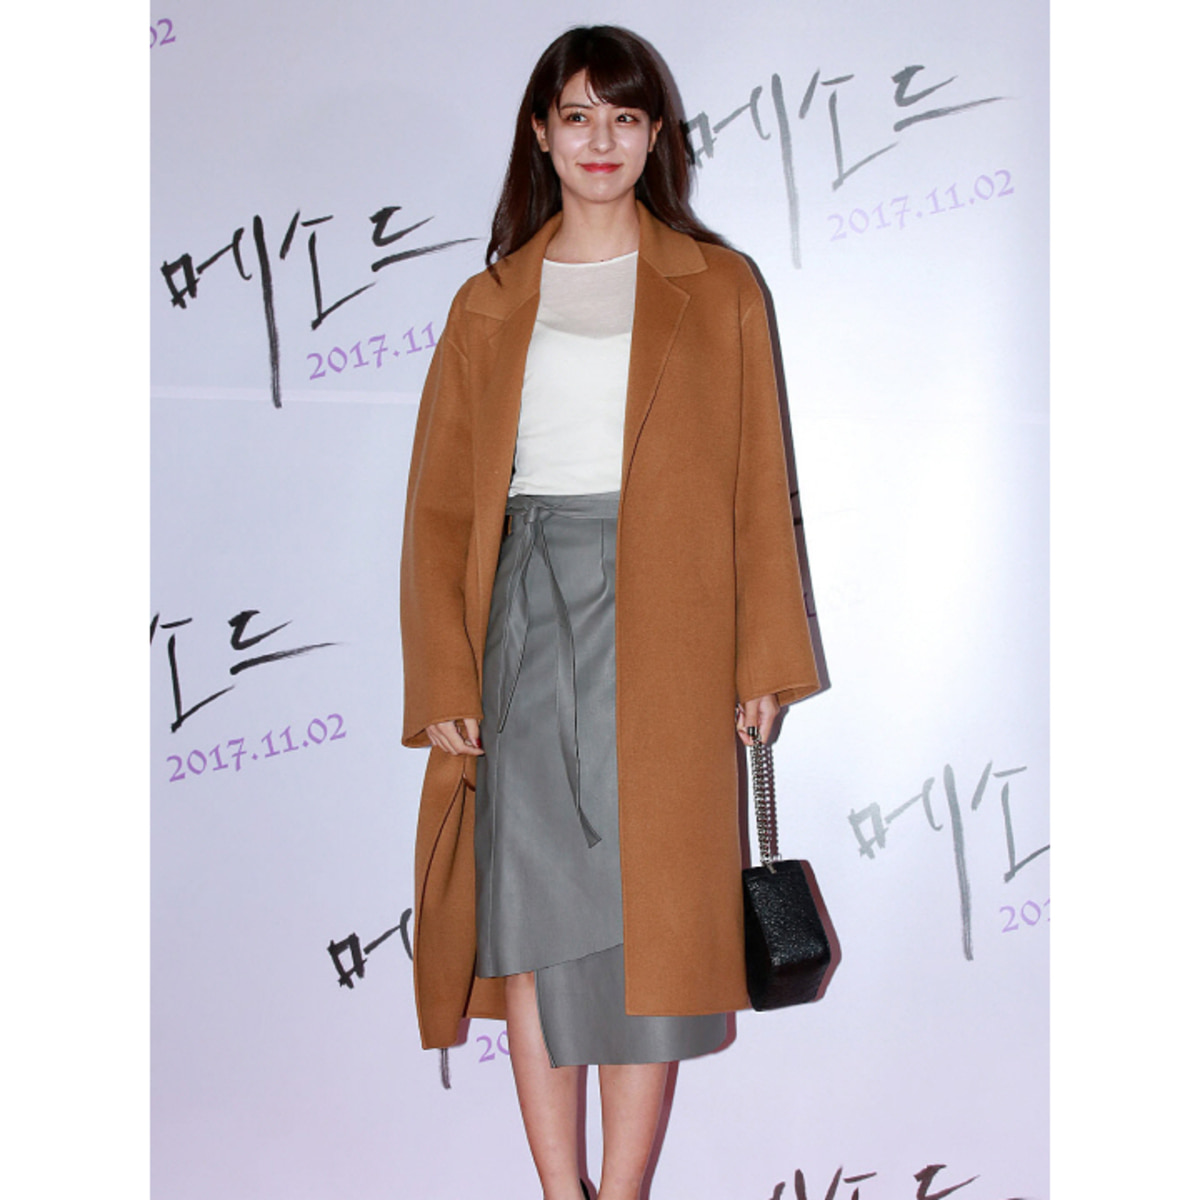 [후지이 미나] MUSÉE Manet Wool cashmere blended coat - camel